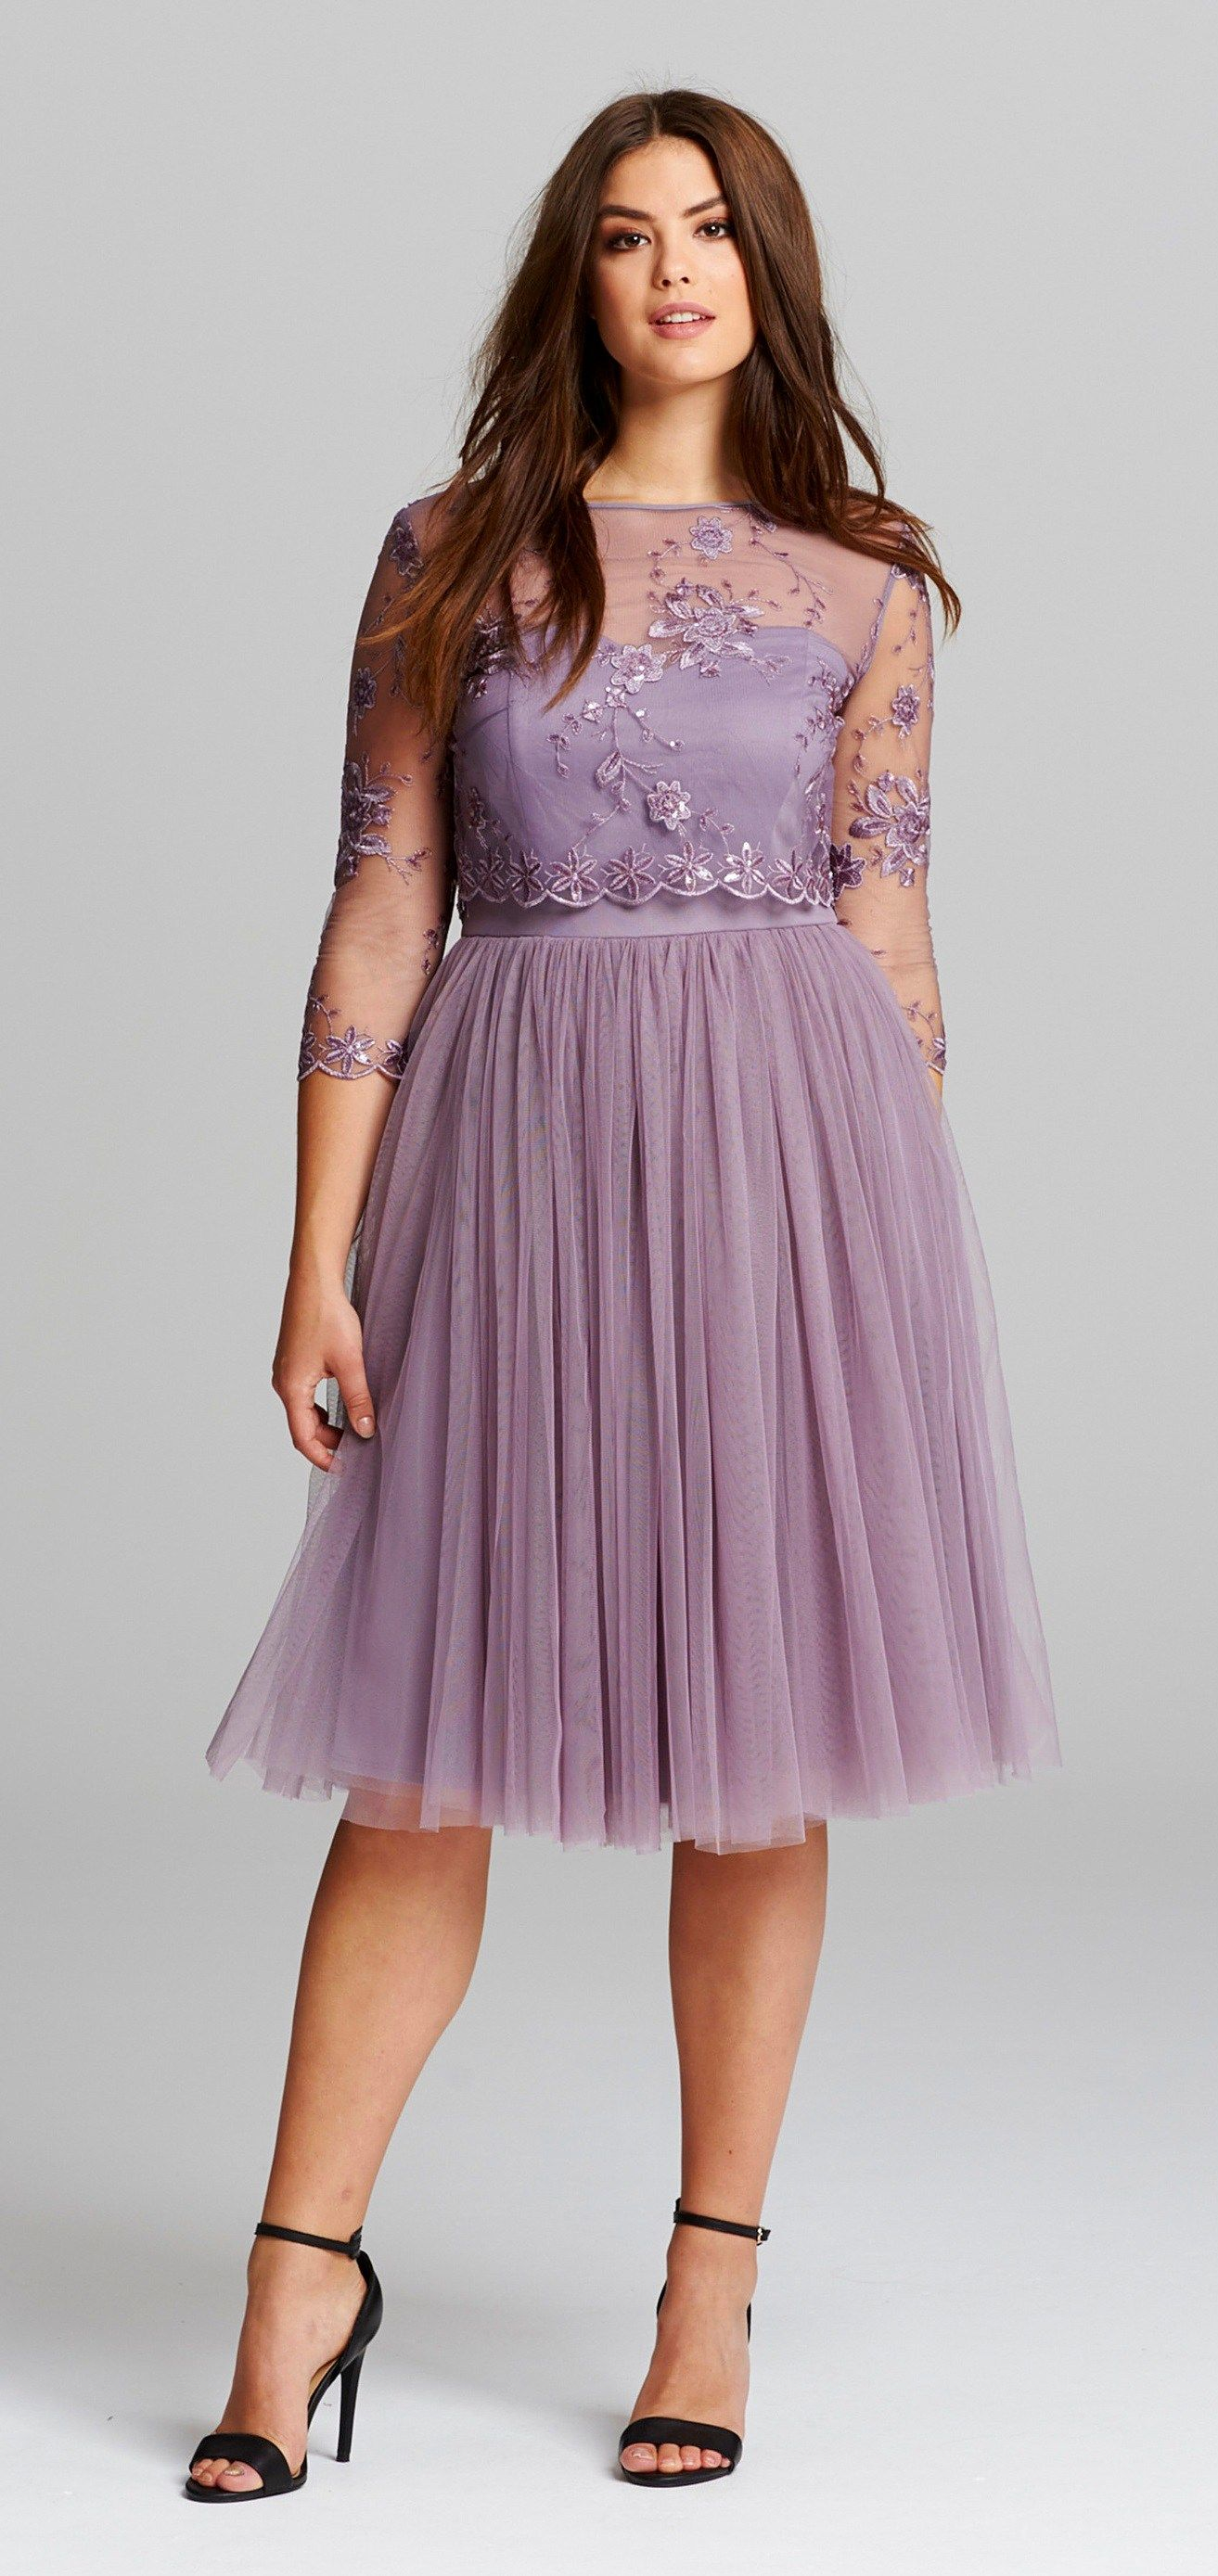 45 Plus Size Wedding Guest Dresses With Sleeves Alexa Webb Plus Size Wedding Guest Dresses Dresses To Wear To A Wedding Plus Size Cocktail Dresses